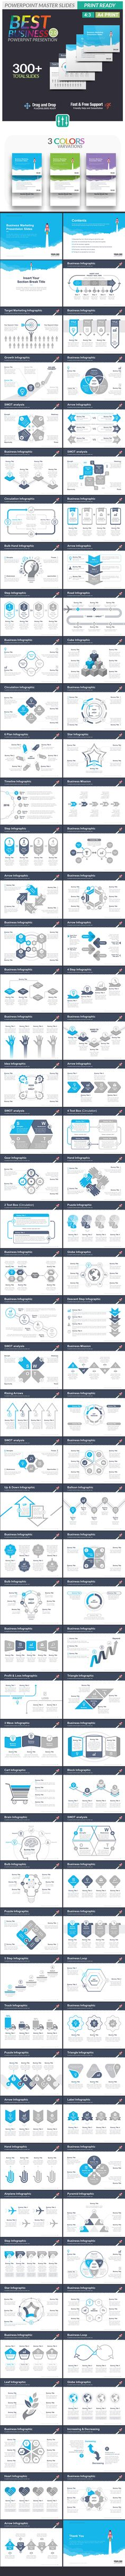 Best Business 002 - PowerPoint Template More